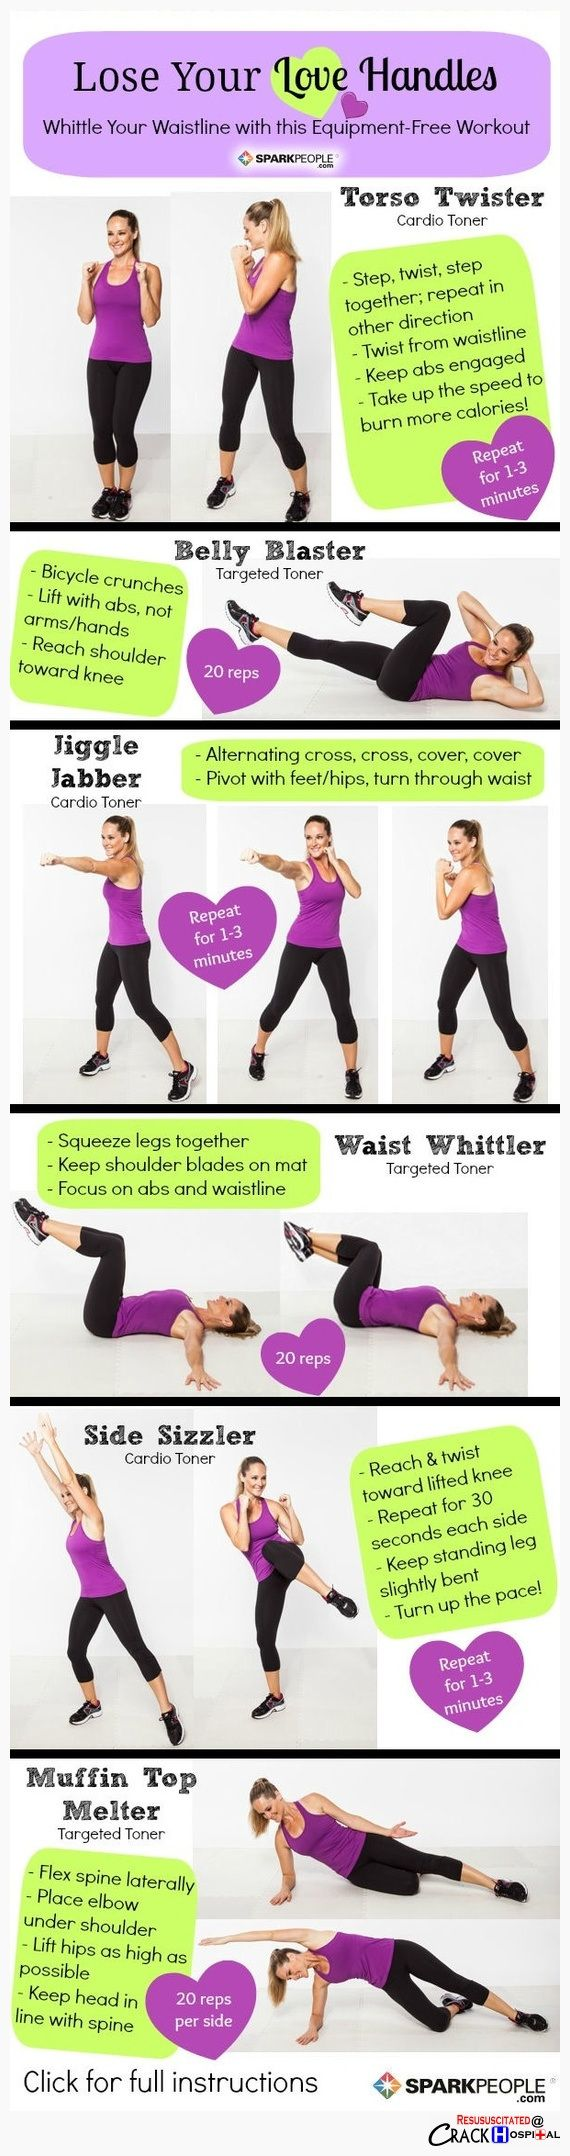 Getting rid of love handles without equipment